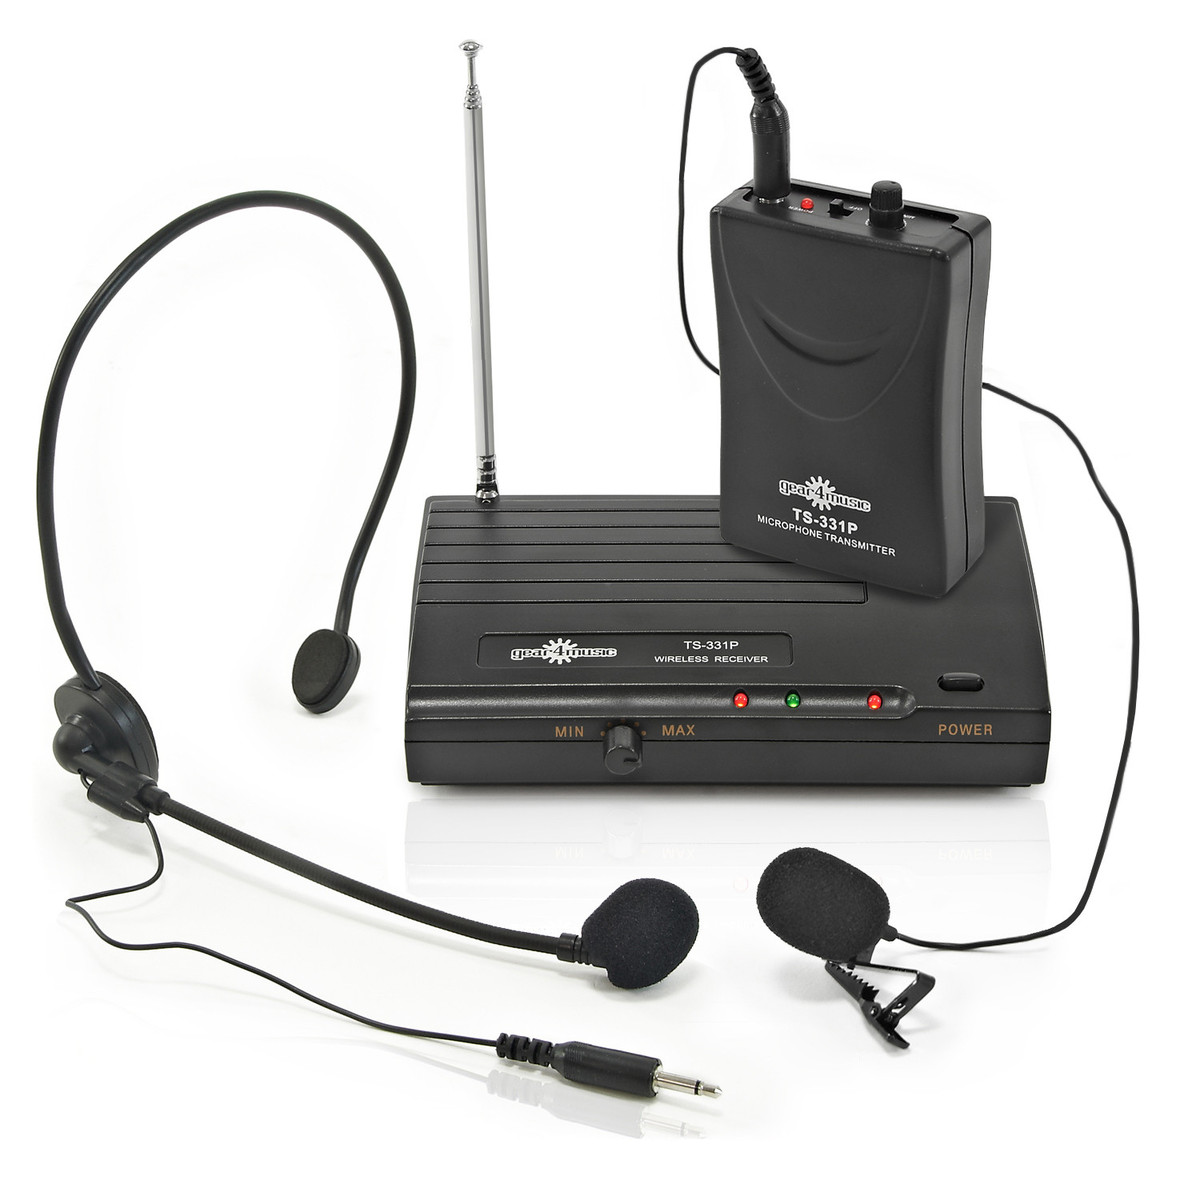 wireless microphone headset and lavalier mic system by gear4music at. Black Bedroom Furniture Sets. Home Design Ideas